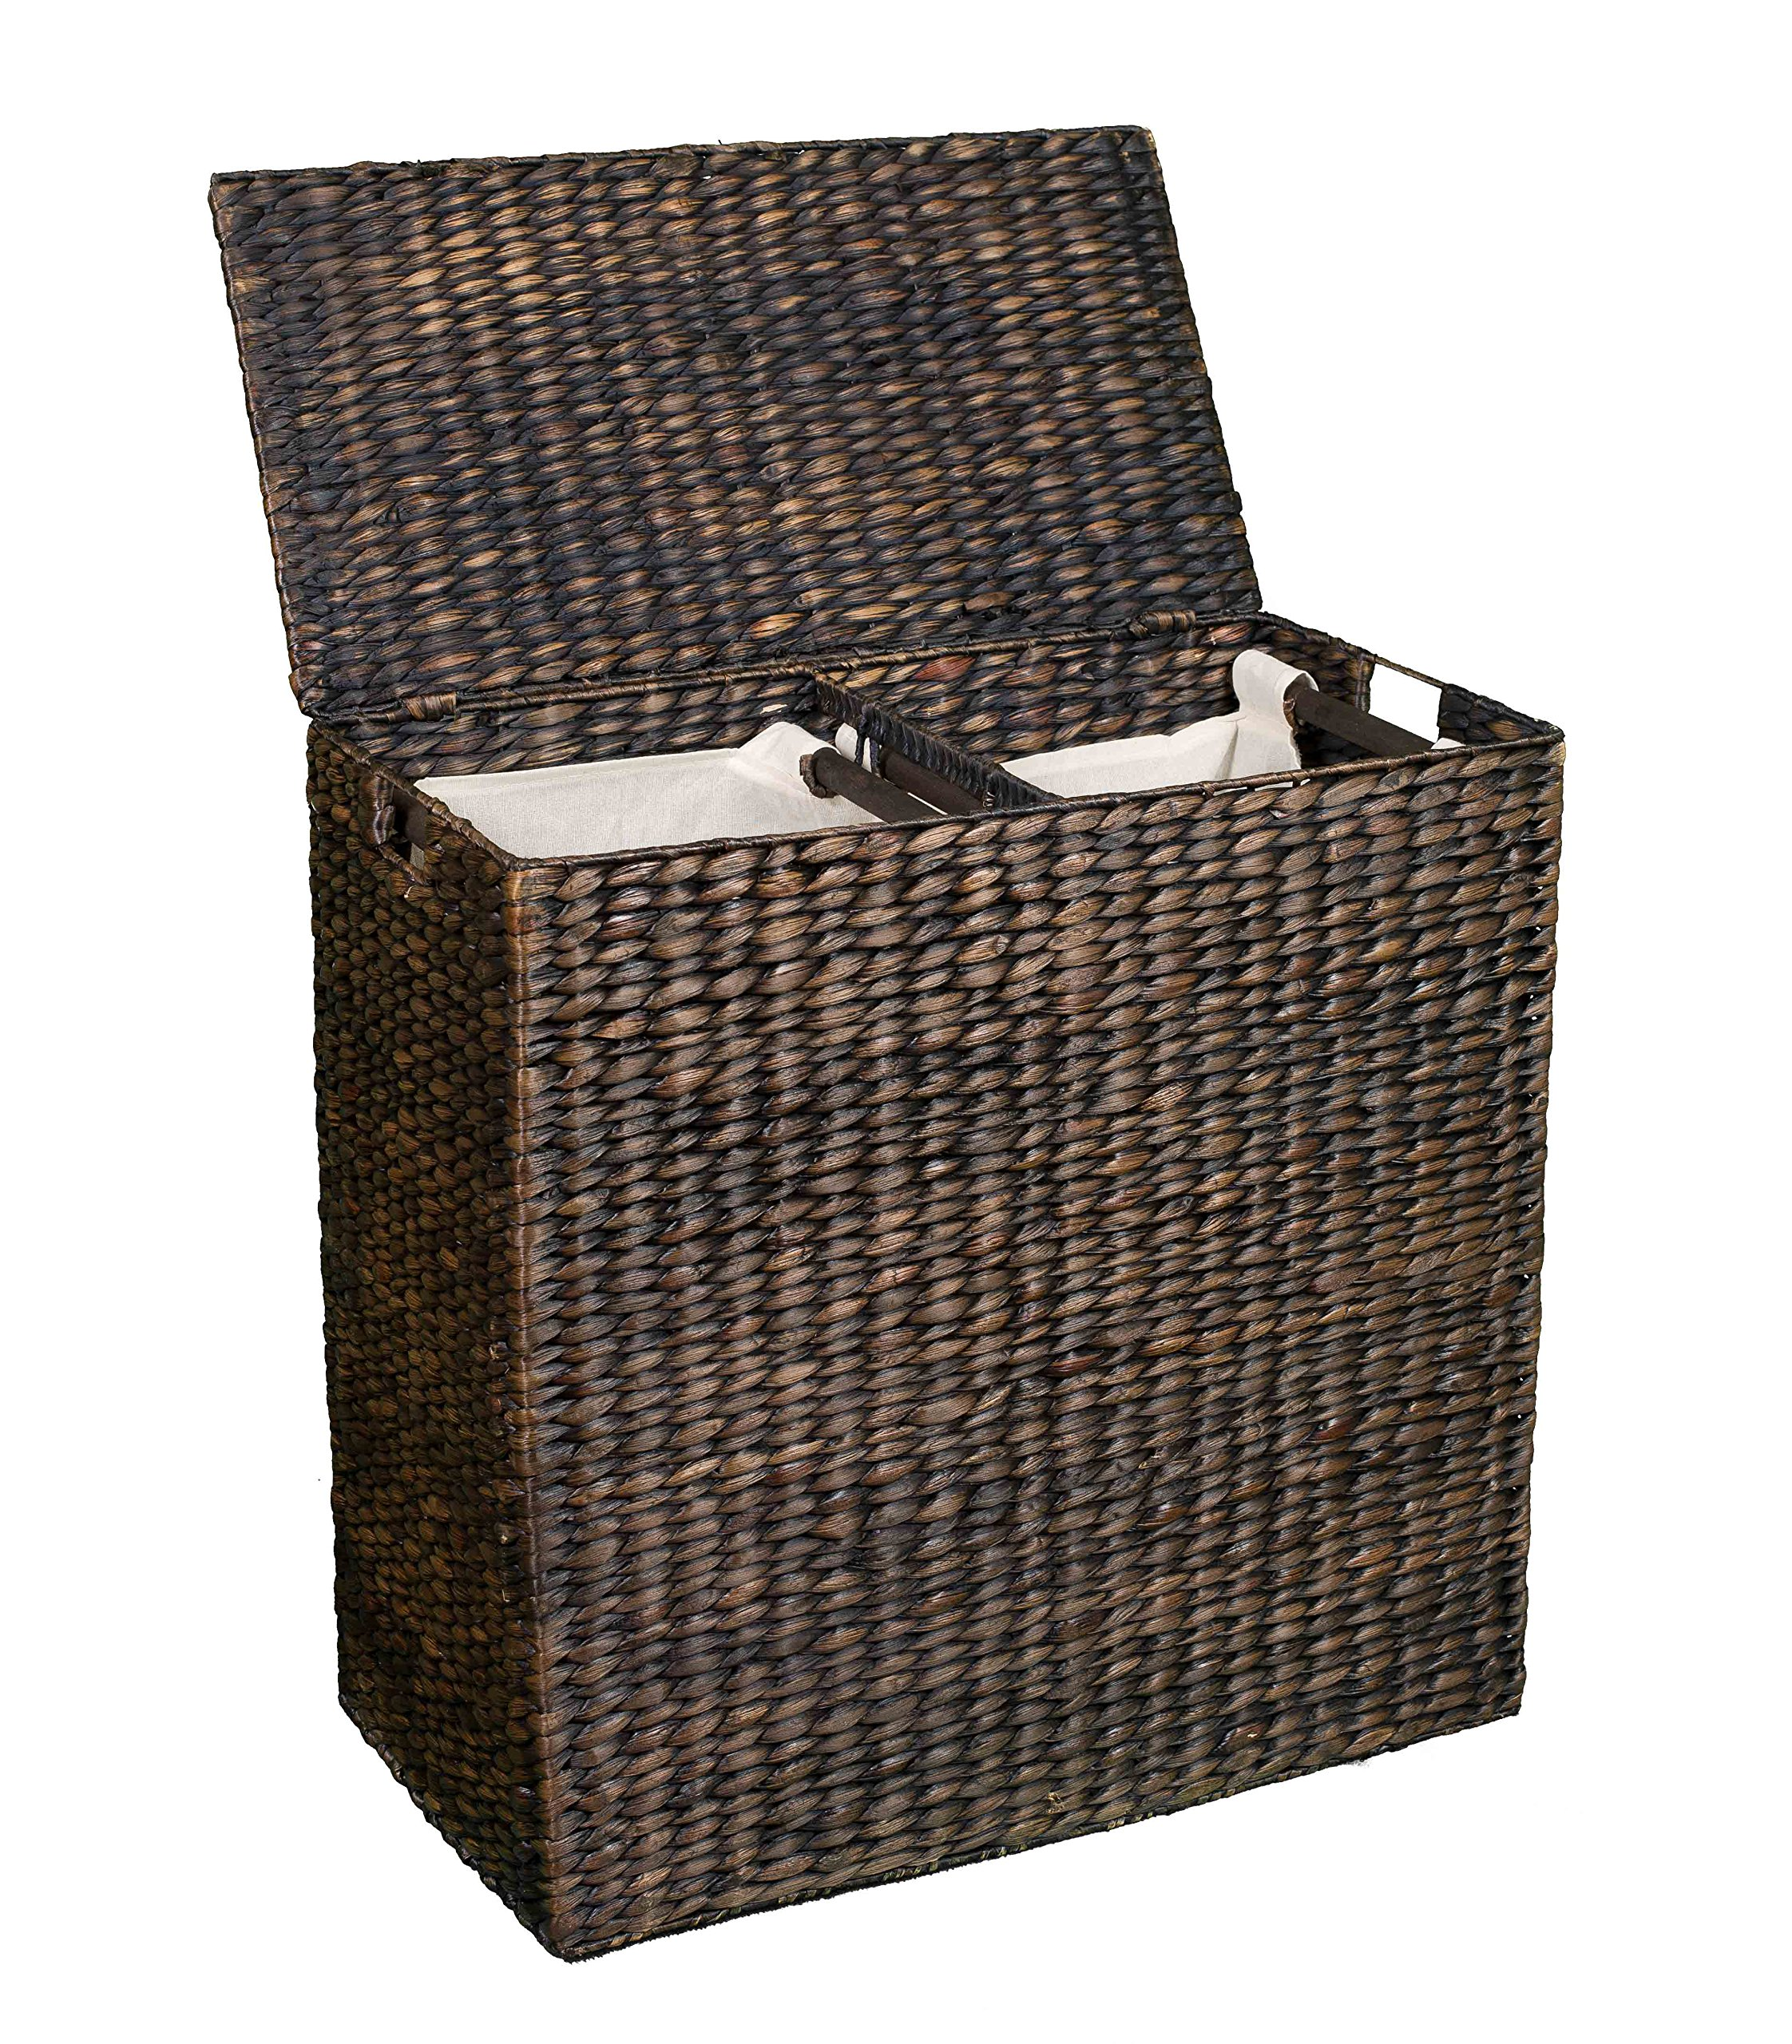 Birdrock home water hyacinth laundry hamper with divided - Divided laundry hampers ...